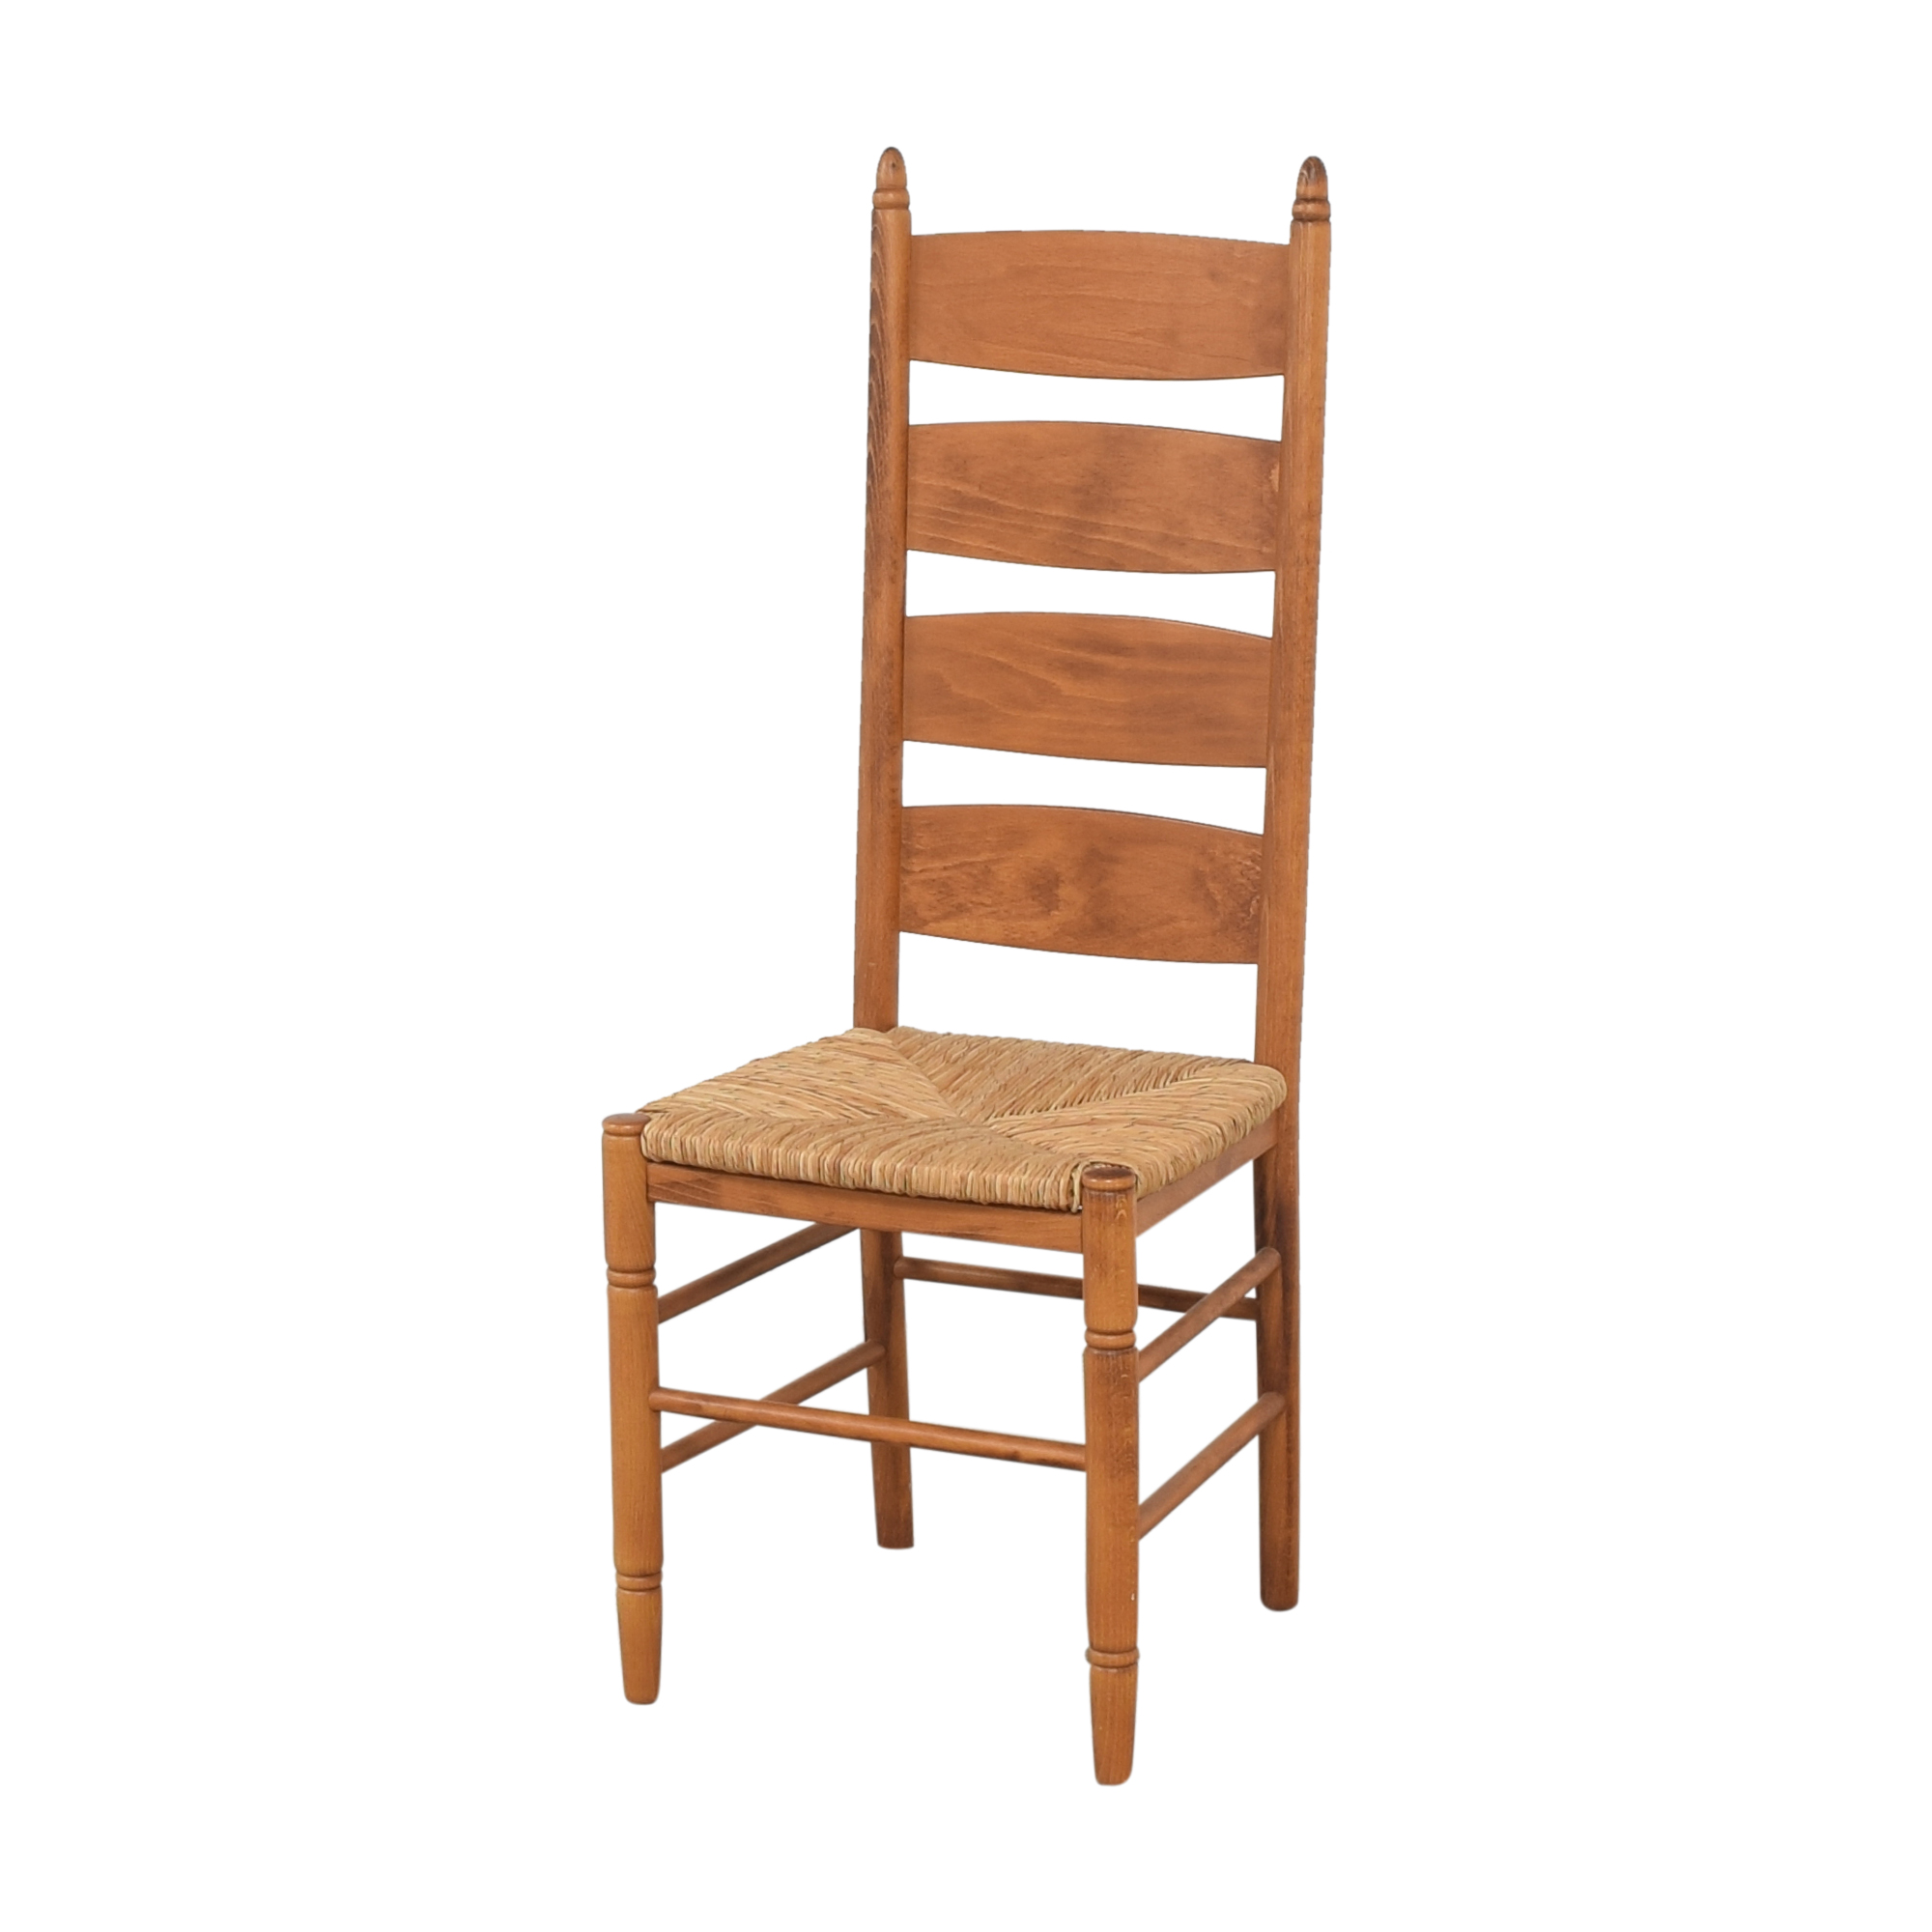 Pottery Barn Pottery Barn Ladder Back Dining Chairs Chairs